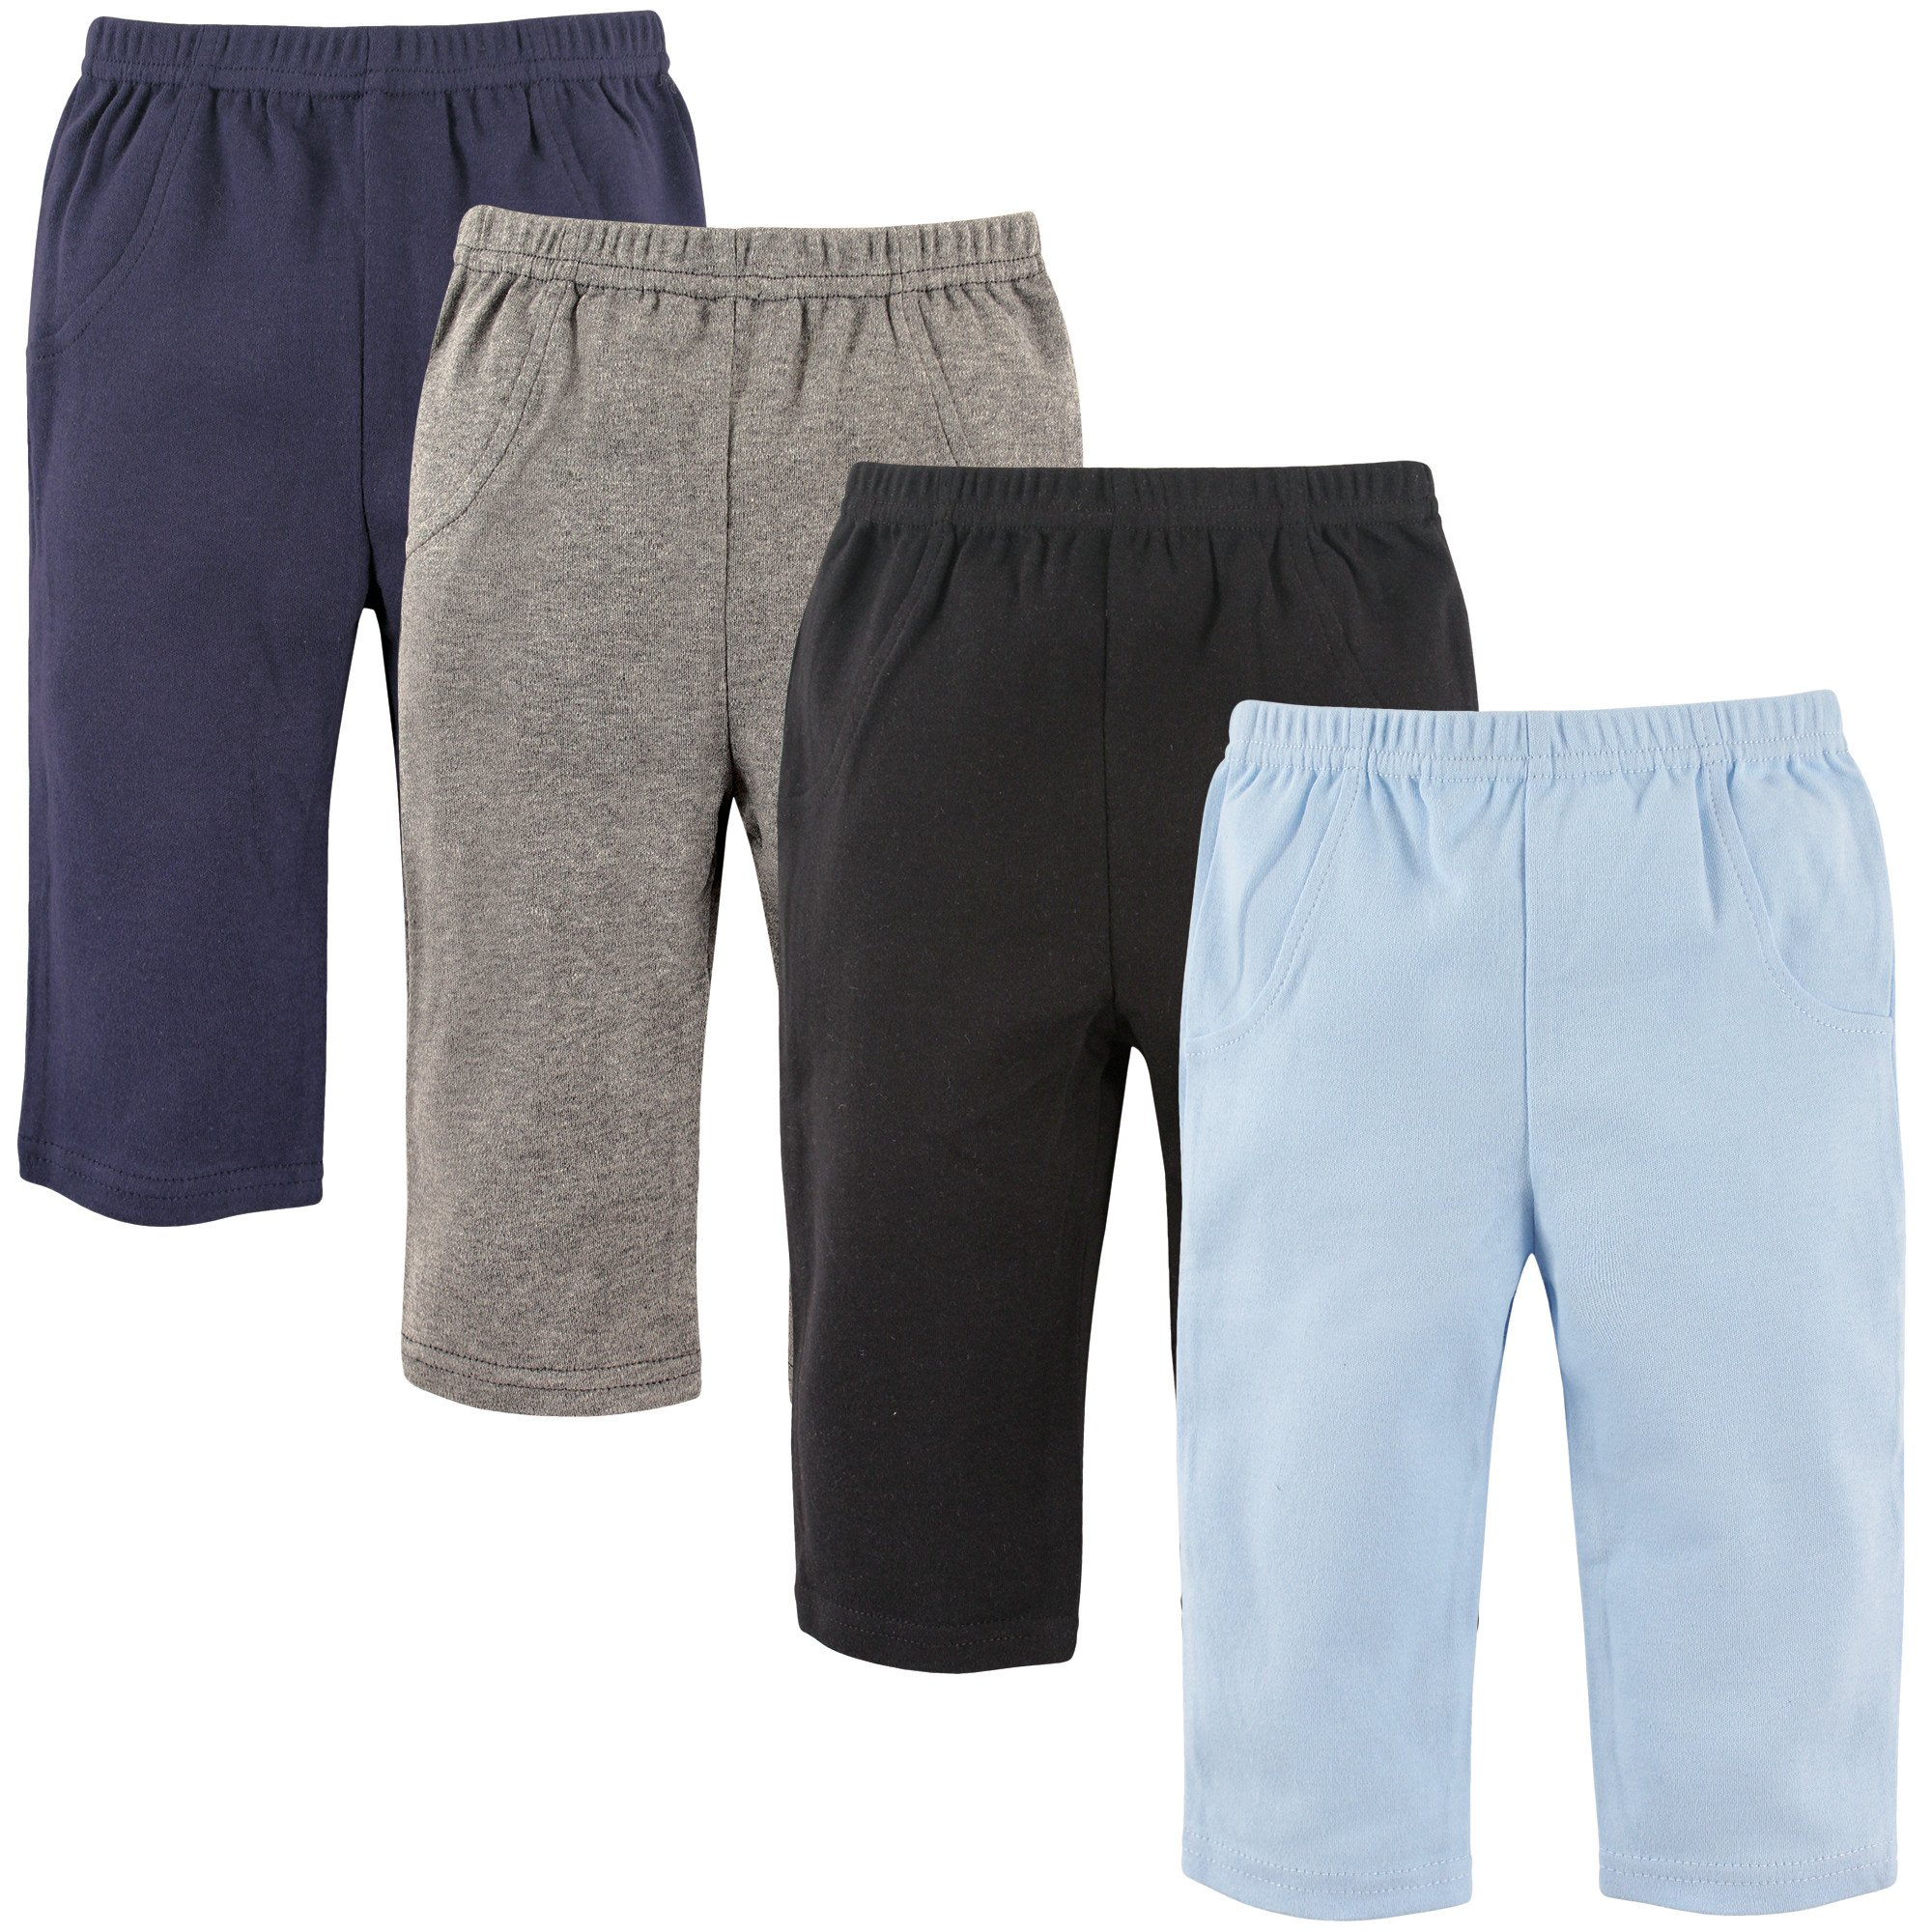 Luvable Friends Baby Cotton Tapered Ankle Pants, Boy Solids 4pk, 0-3 Months